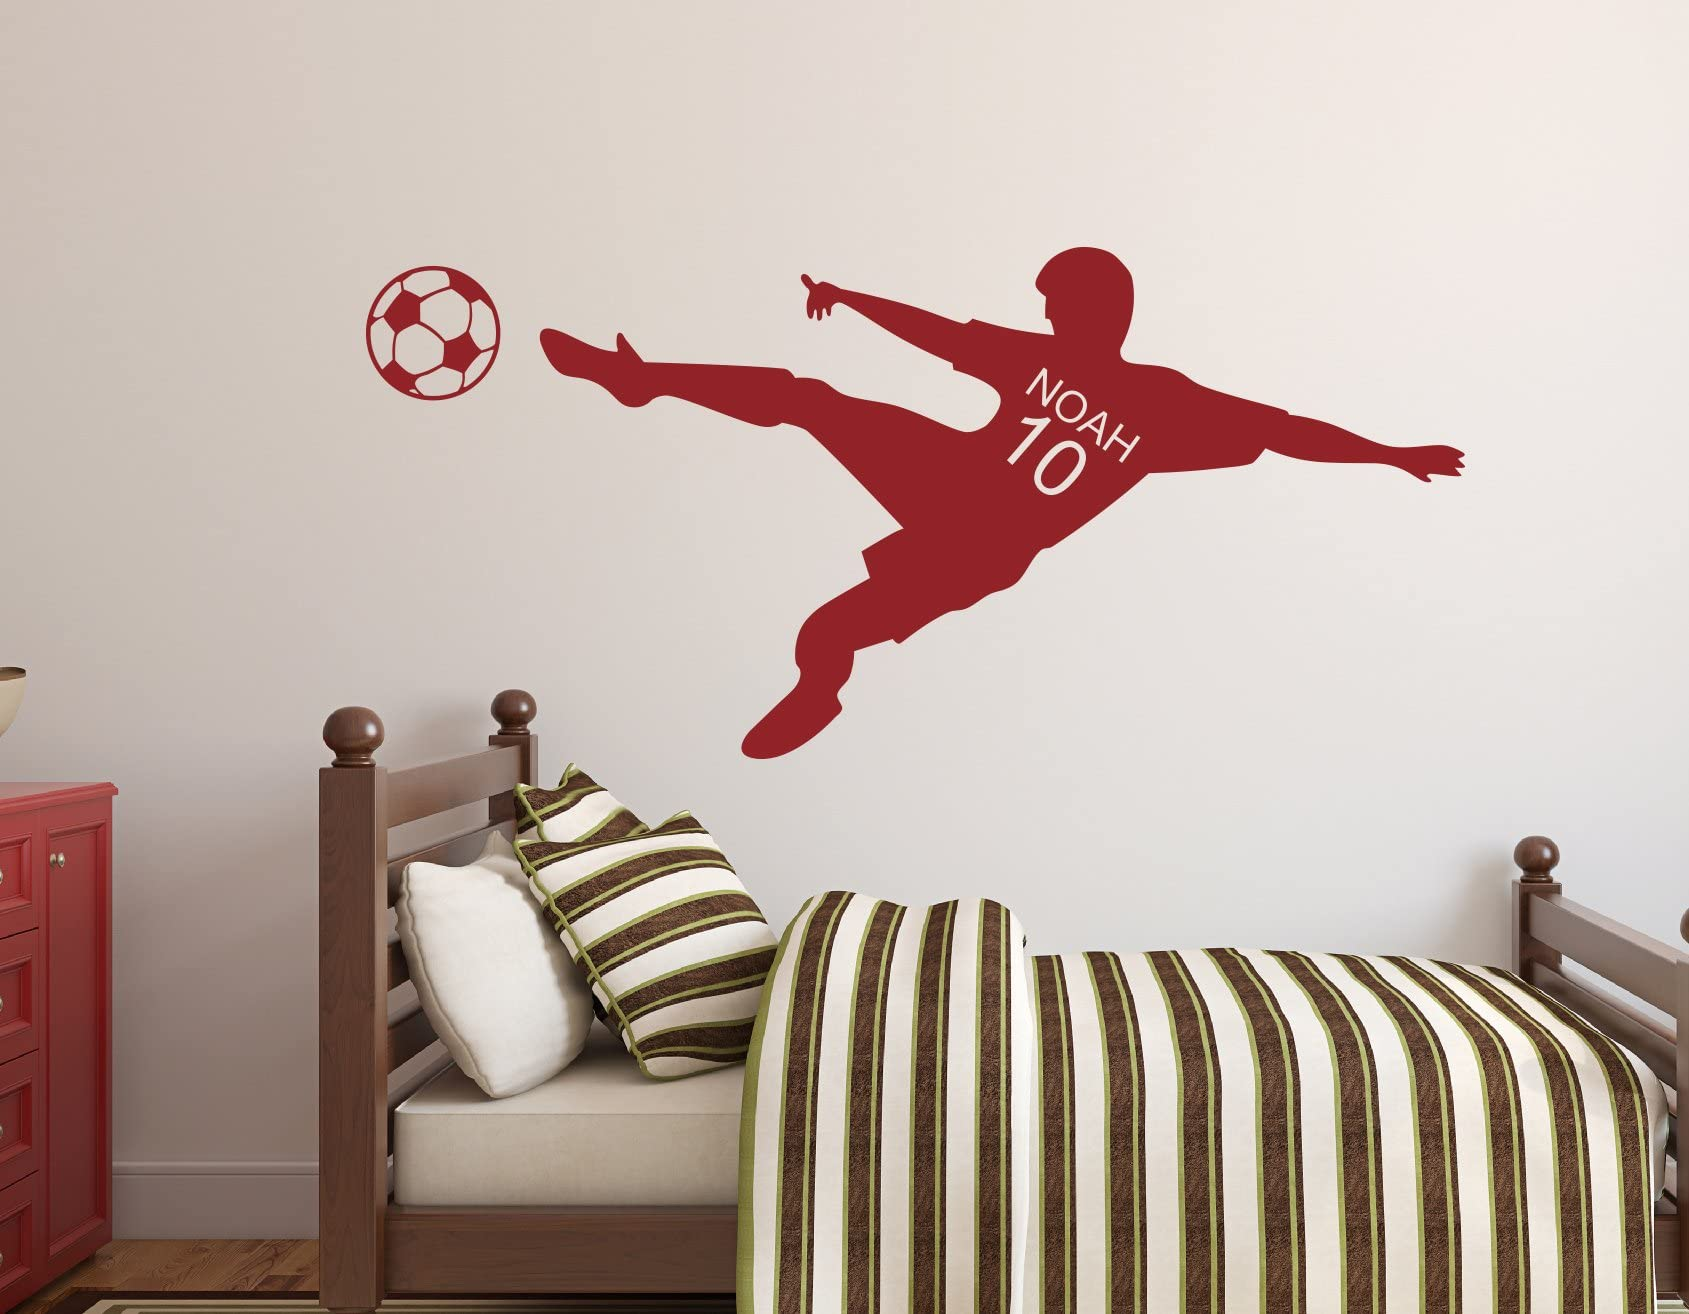 Personalized Name Soccer Wall Decal Nursery Wall Decals Soccer Player Wall Decal Vinyl 32wx15h Baby